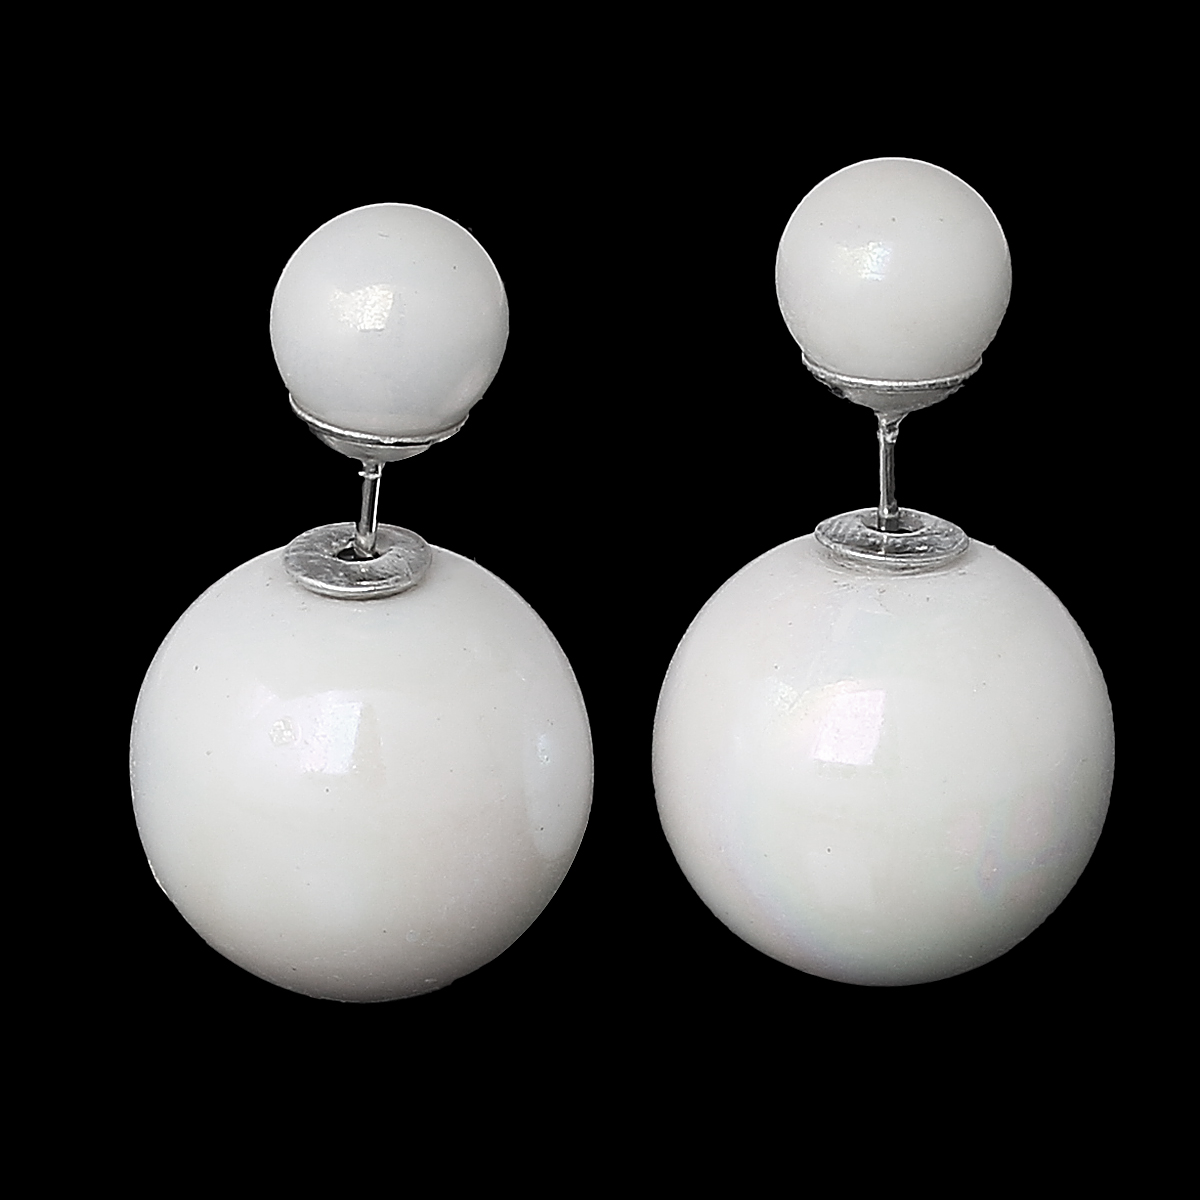 """New Fashion Lady Ear Studs Earrings post Round White AB Color Pearl Imitation 24mm(1"""")x16mm( 5/8""""),1 Pair 2015 new(China (Mainland))"""